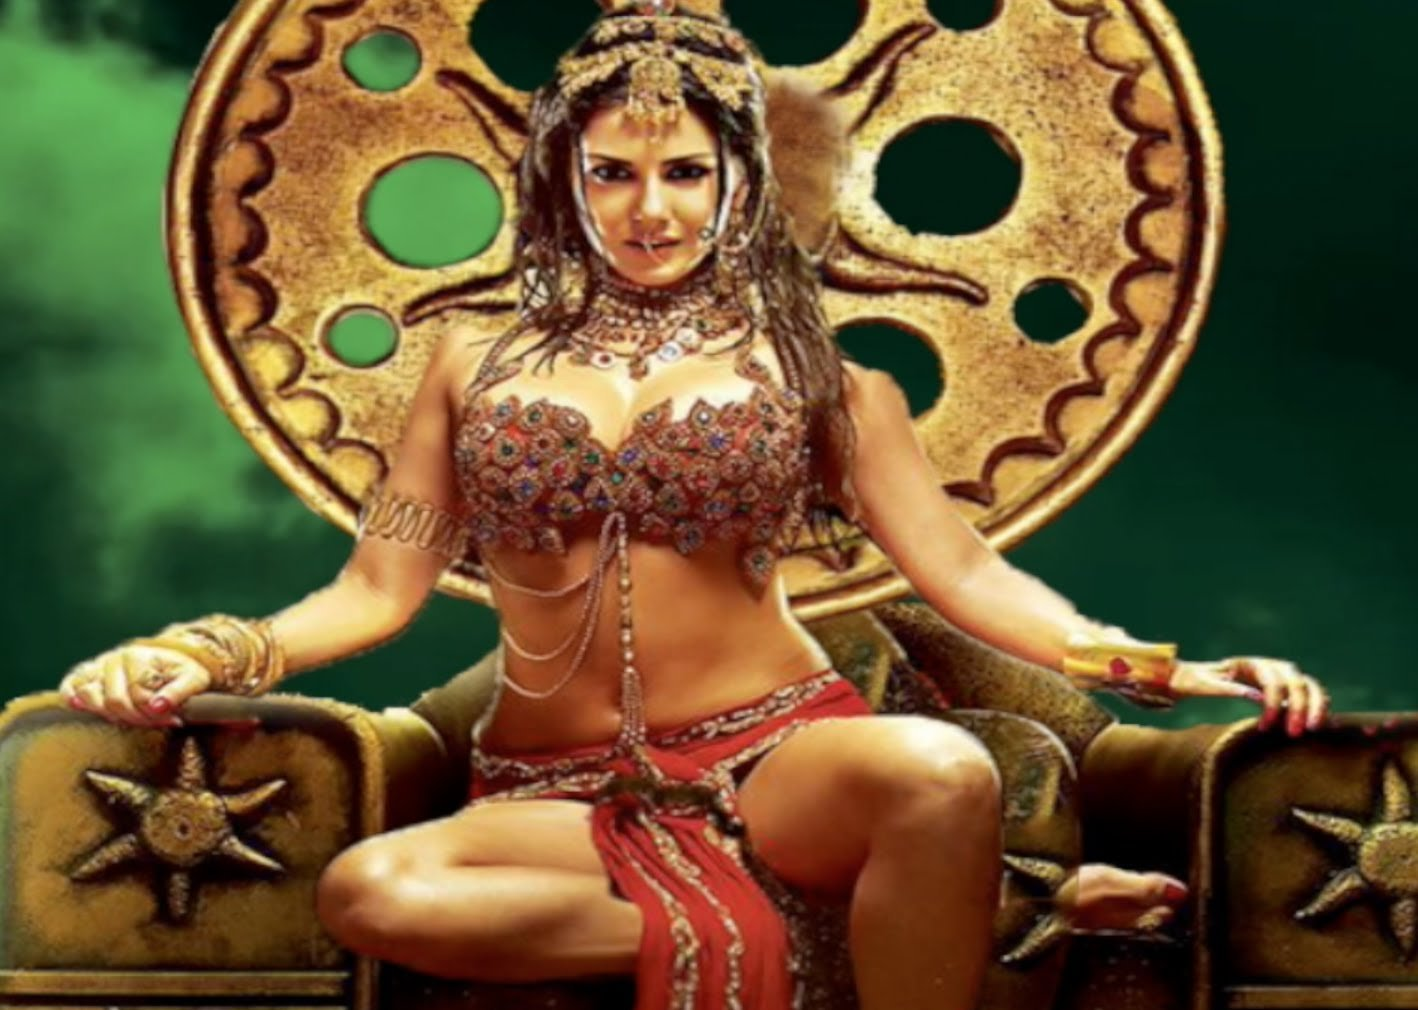 A new Sunny will be depicted in 'Ek Paheli Leela' – Sunny Leone